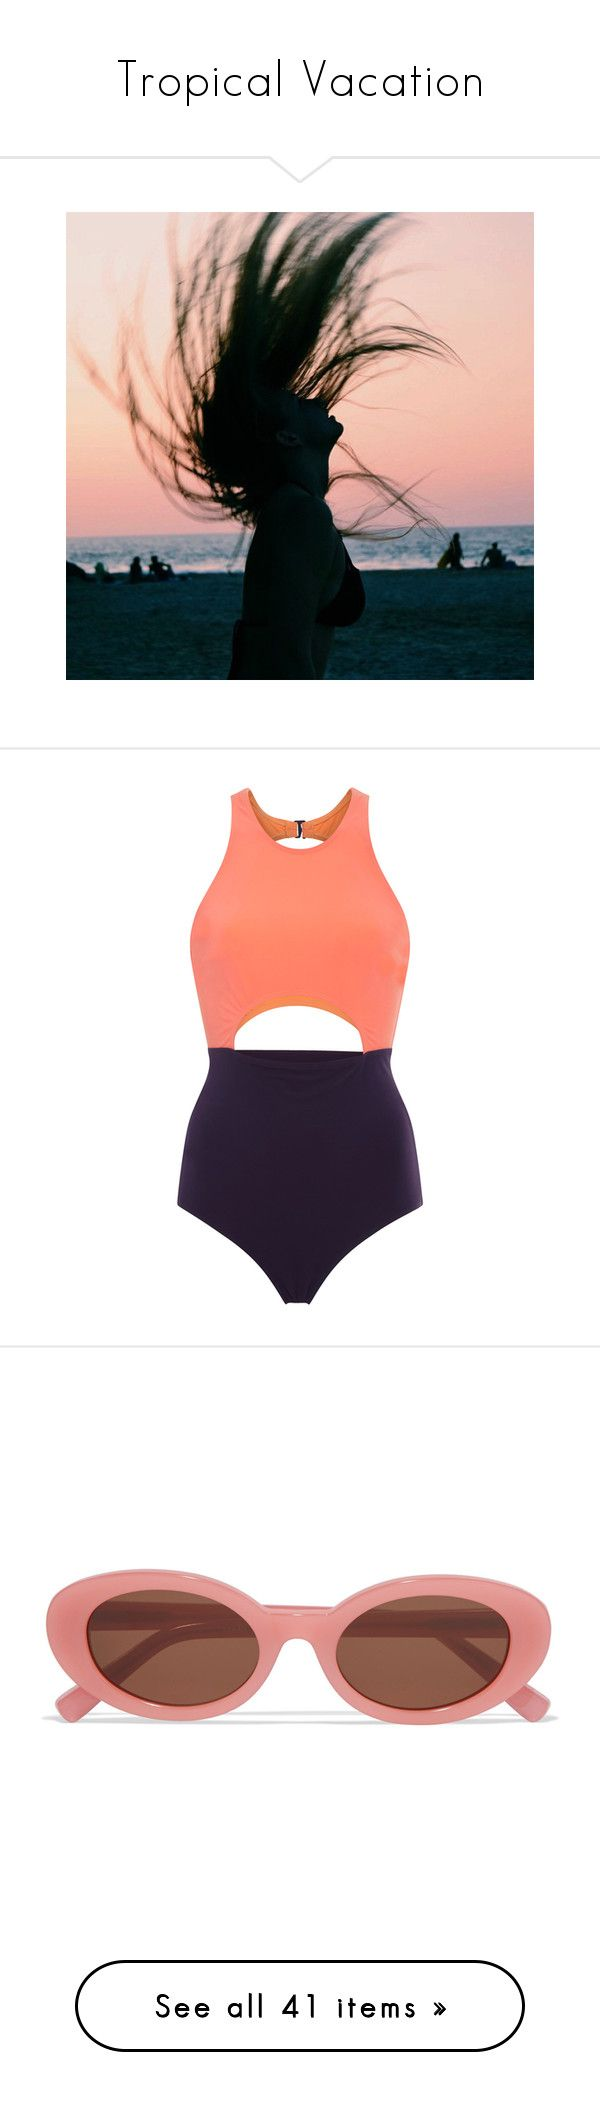 """Tropical Vacation"" by hanraven ❤ liked on Polyvore featuring swimwear, one-piece swimsuits, dark purple, tank swimsuit, 1 piece bathing suits, one piece cutout bathing suit, maillot swimsuit, cut out bathing suit, accessories and eyewear"